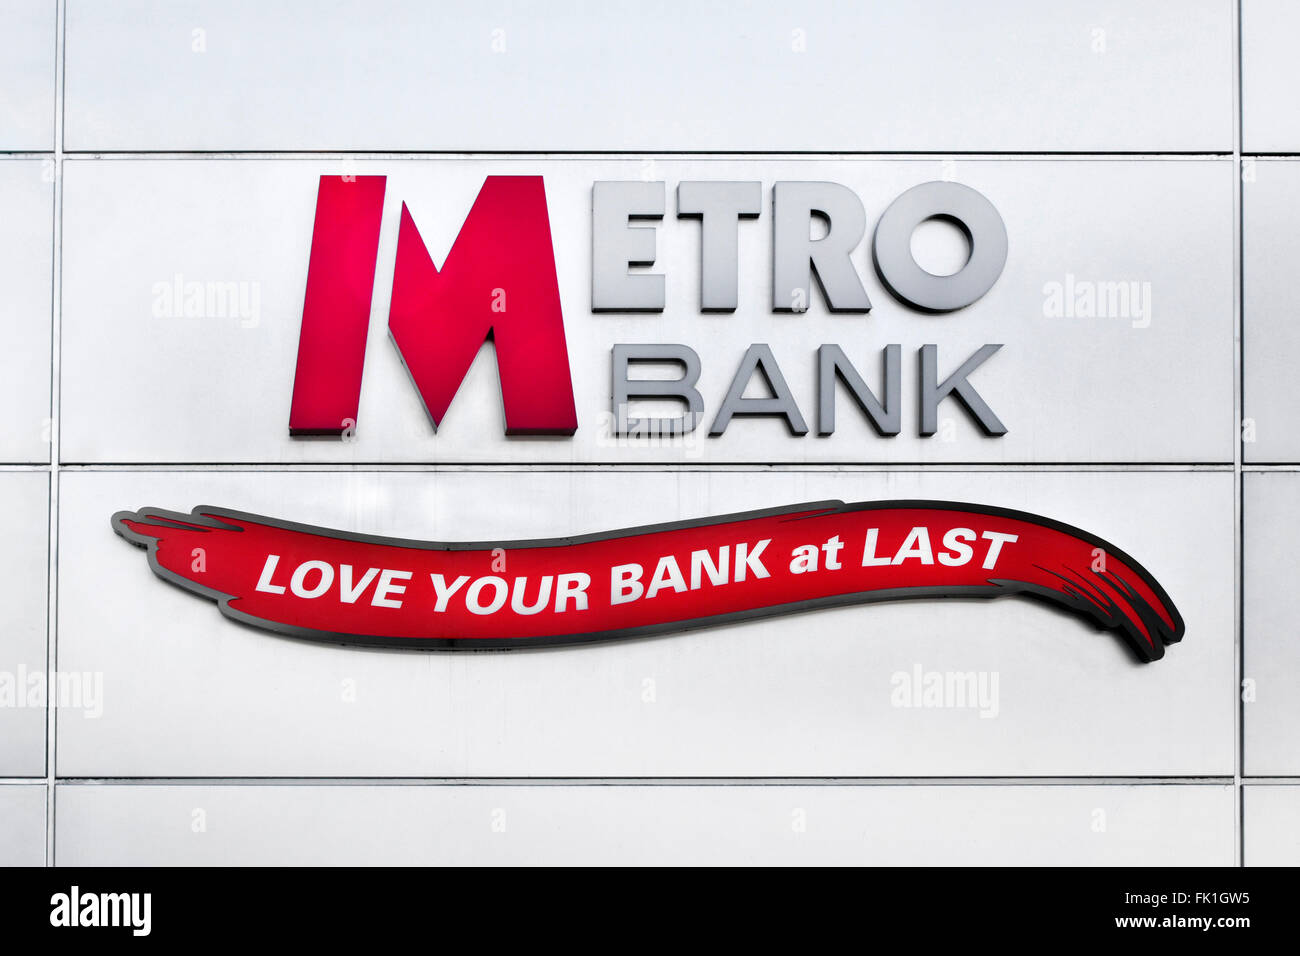 Metro Bank logo and slogan love your bank on wall of new banking branch building in Romford Havering East London - Stock Image